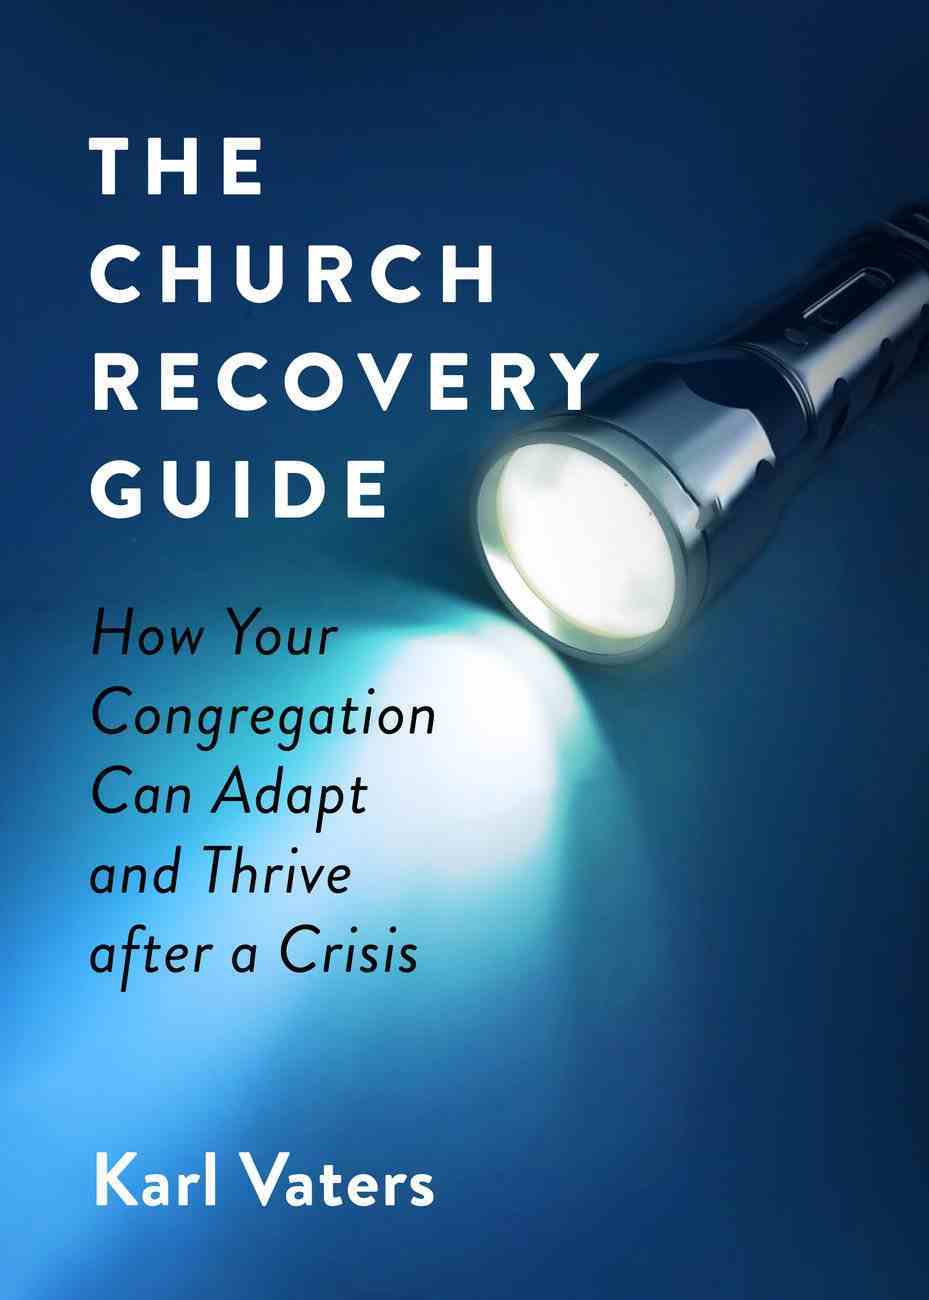 The Church Recovery Guide: How Your Congregation Can Adapt and Thrive After a Crisis Paperback